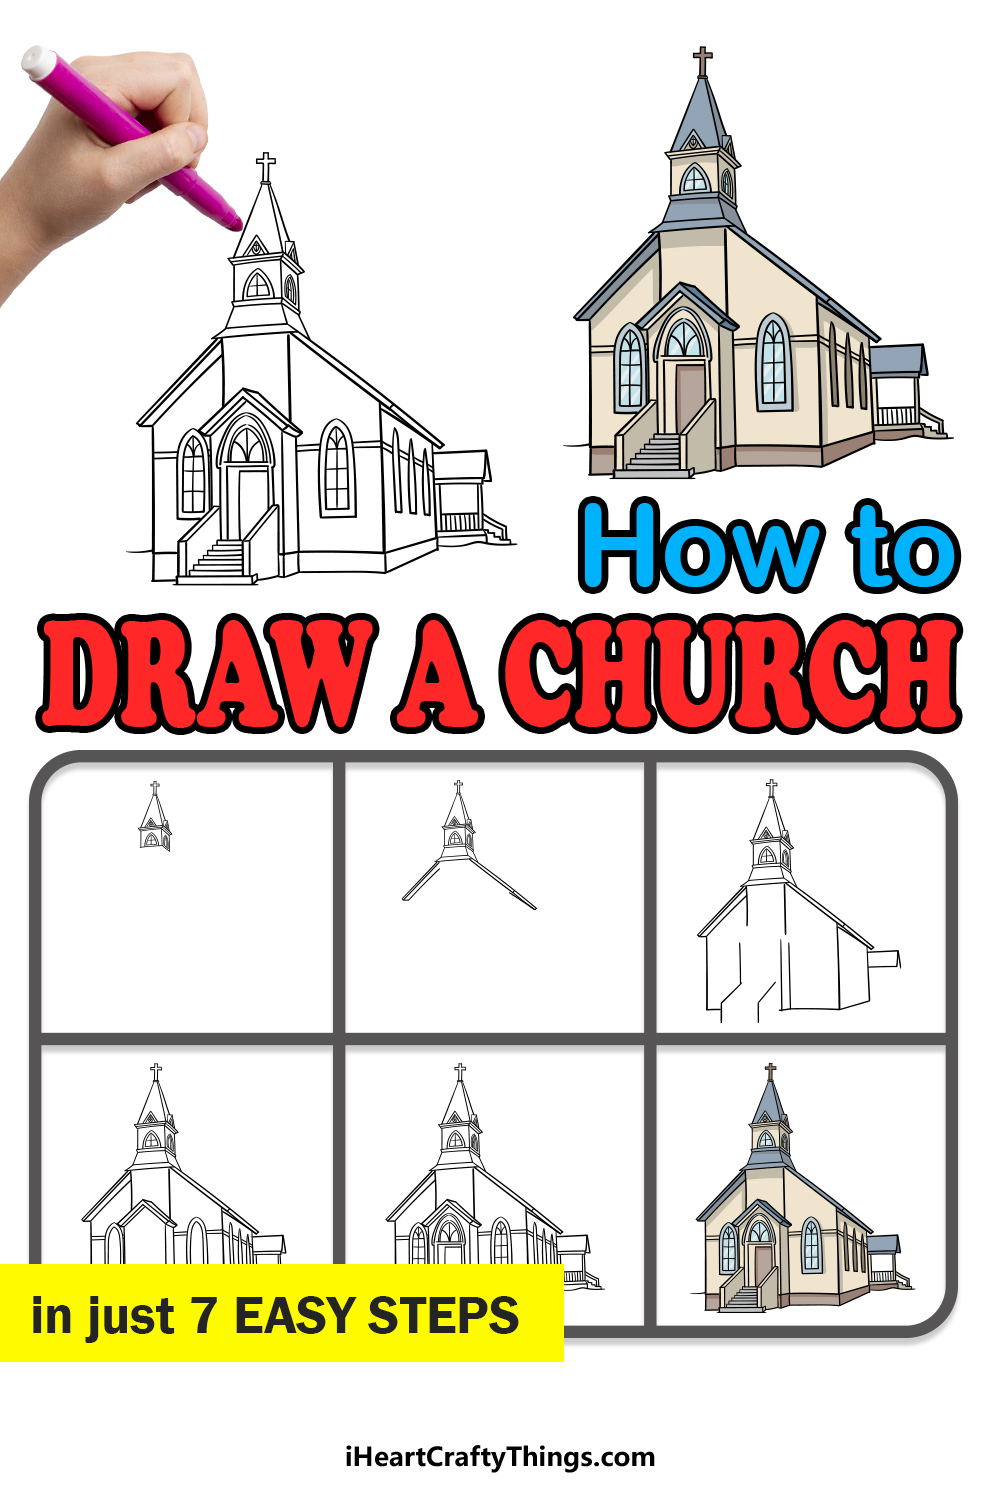 how to draw a church in 7 easy steps